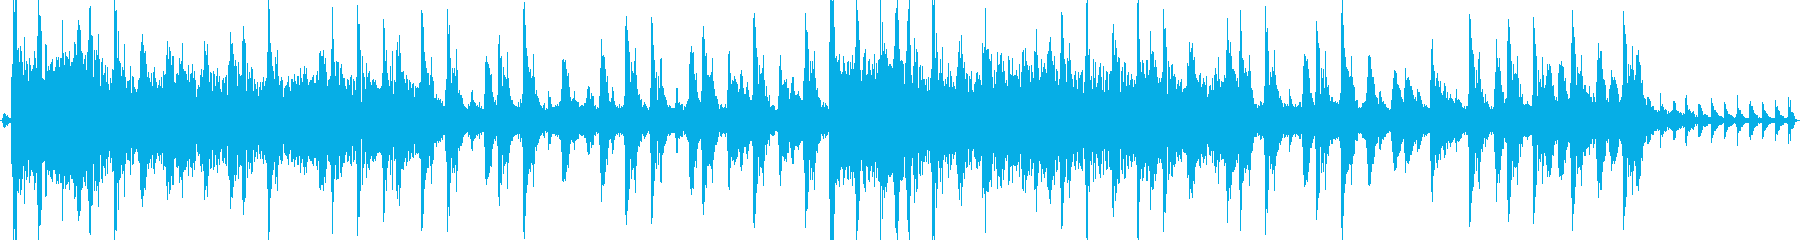 Unsuspecting mysterious jungle jingle's reproduced waveform